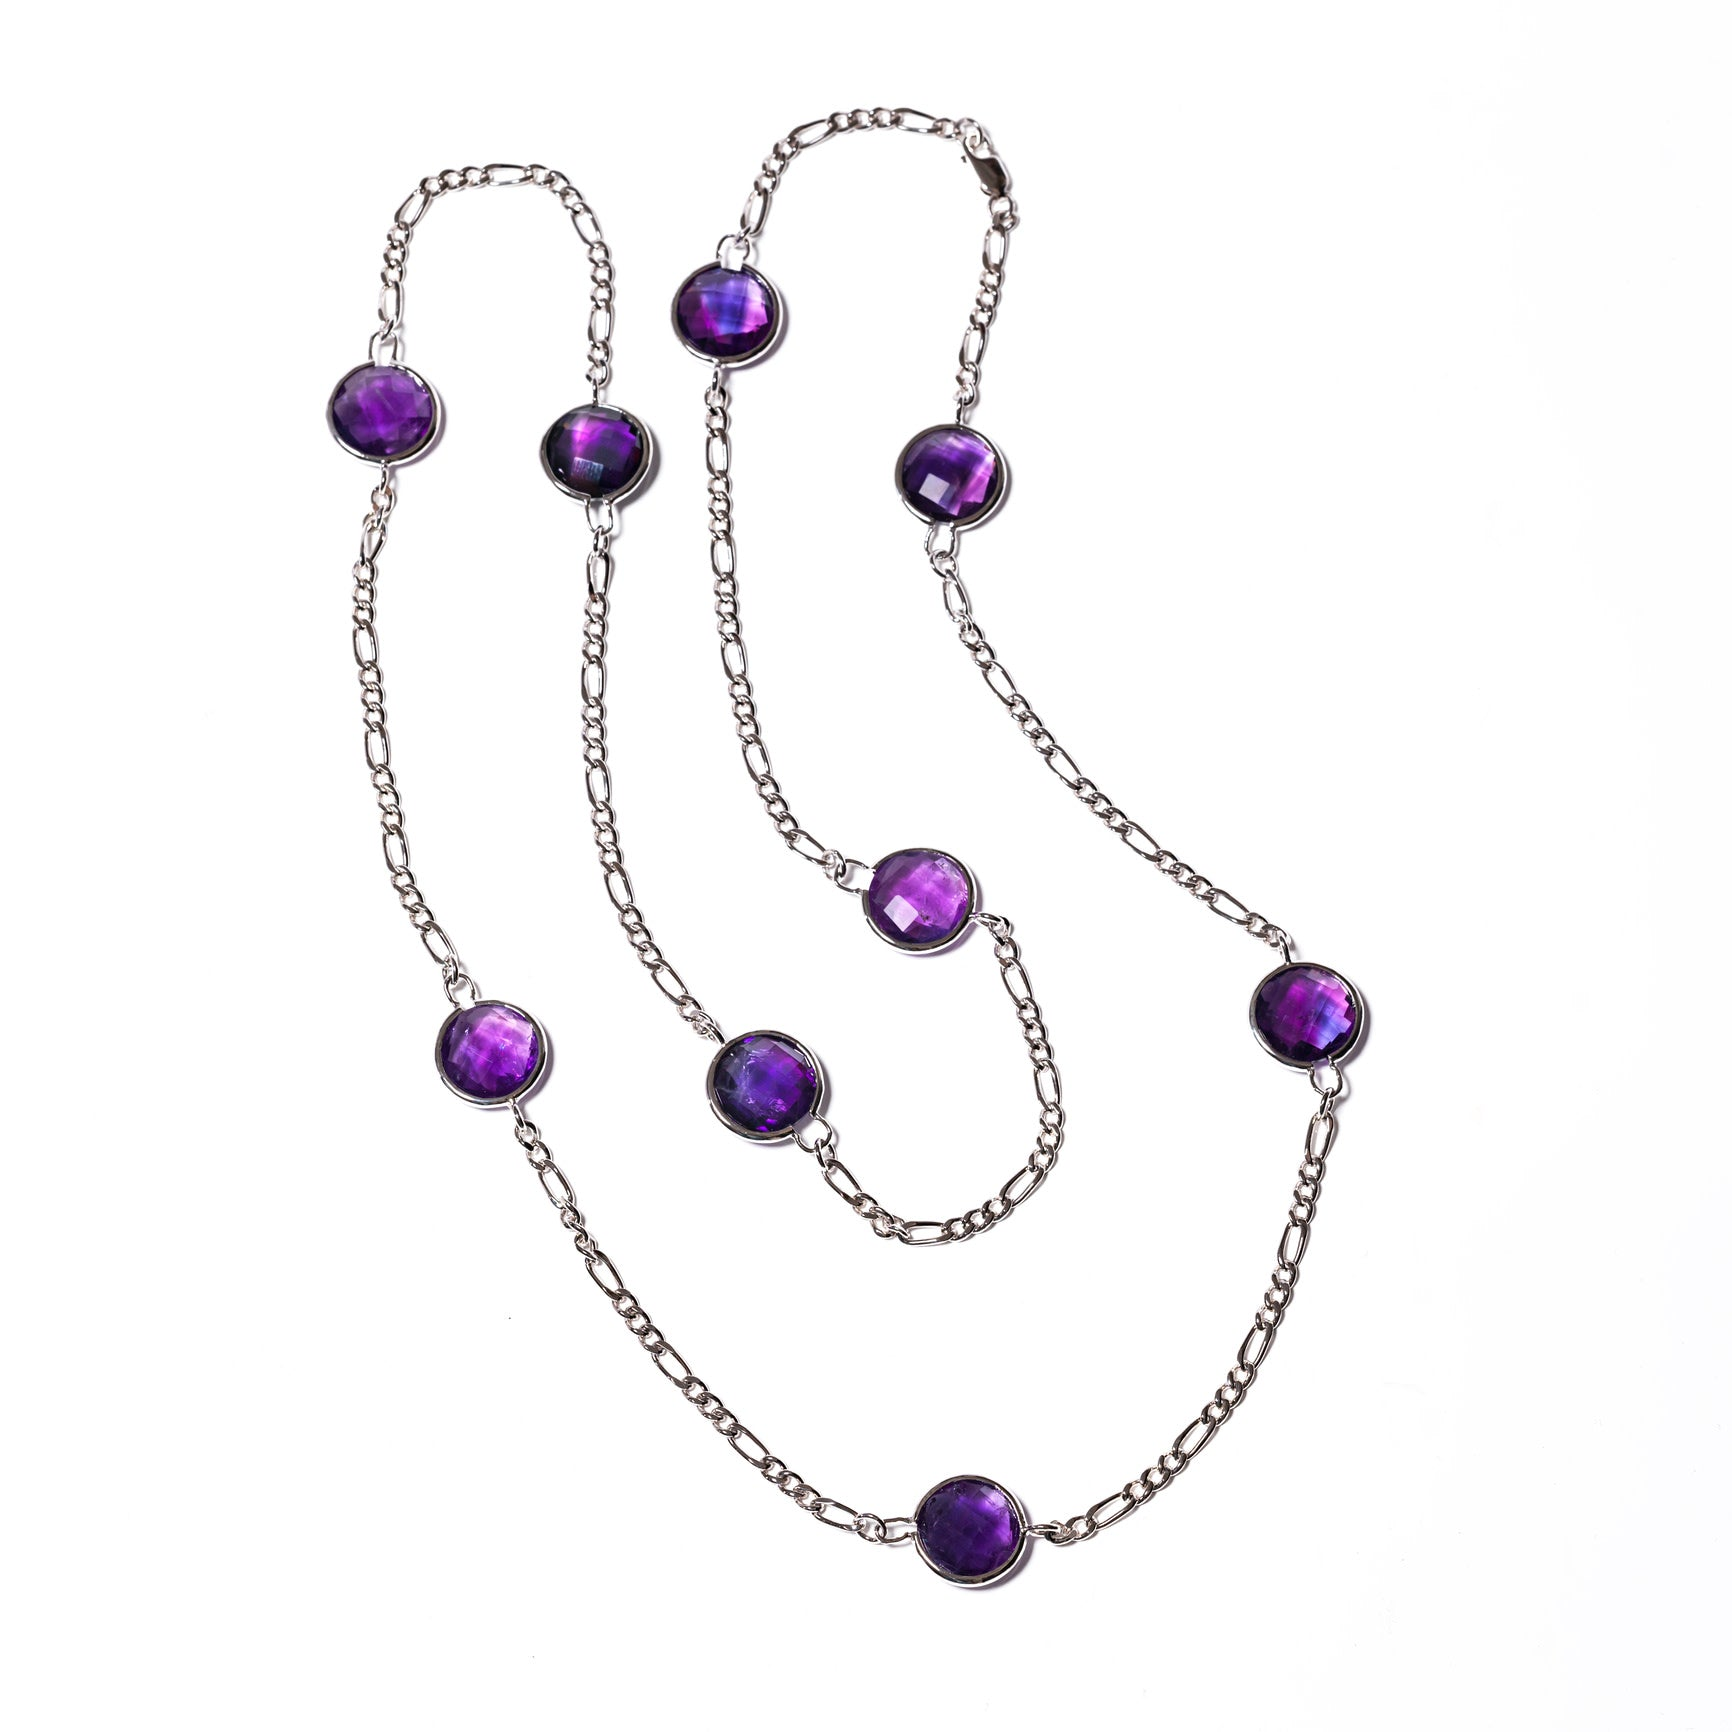 Round Faceted Amethyst Station Necklace